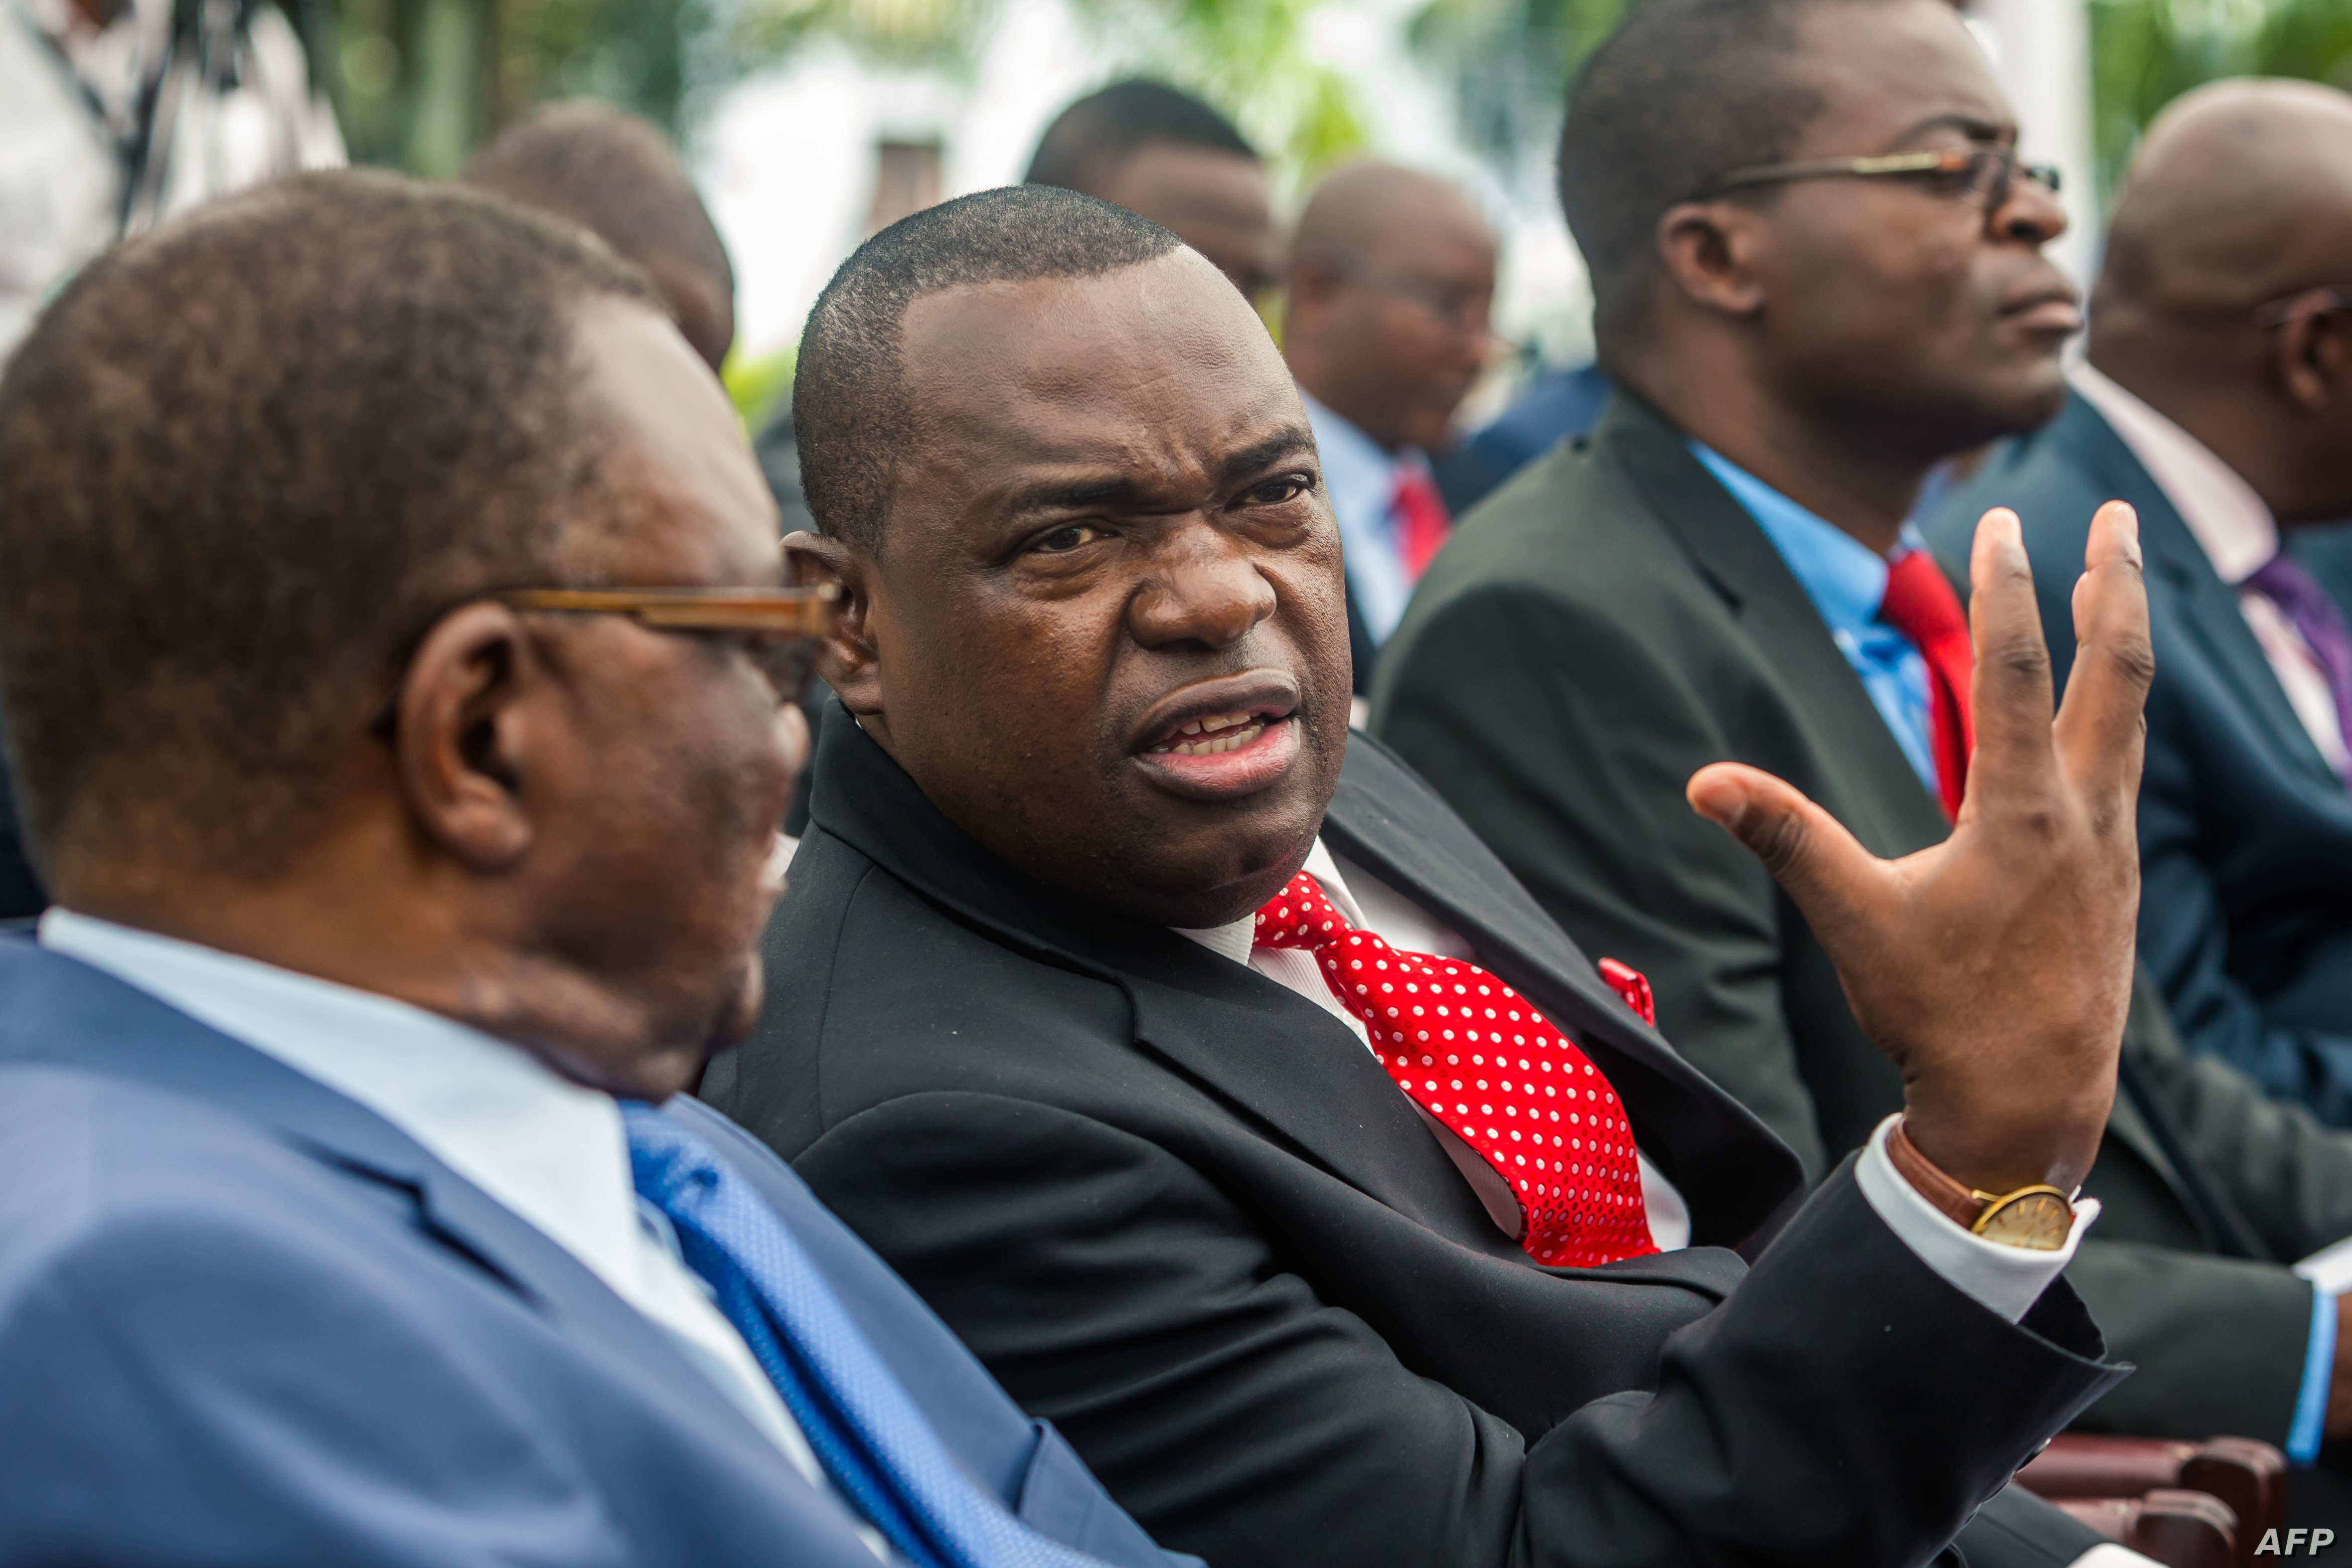 Former Major General Sibusiso Moyo, center, who was appointed Foreign Affairs and International Relations Minister speaks with a fellow minister, before taking the oath of office, Dec. 4, 2017 in Harare.